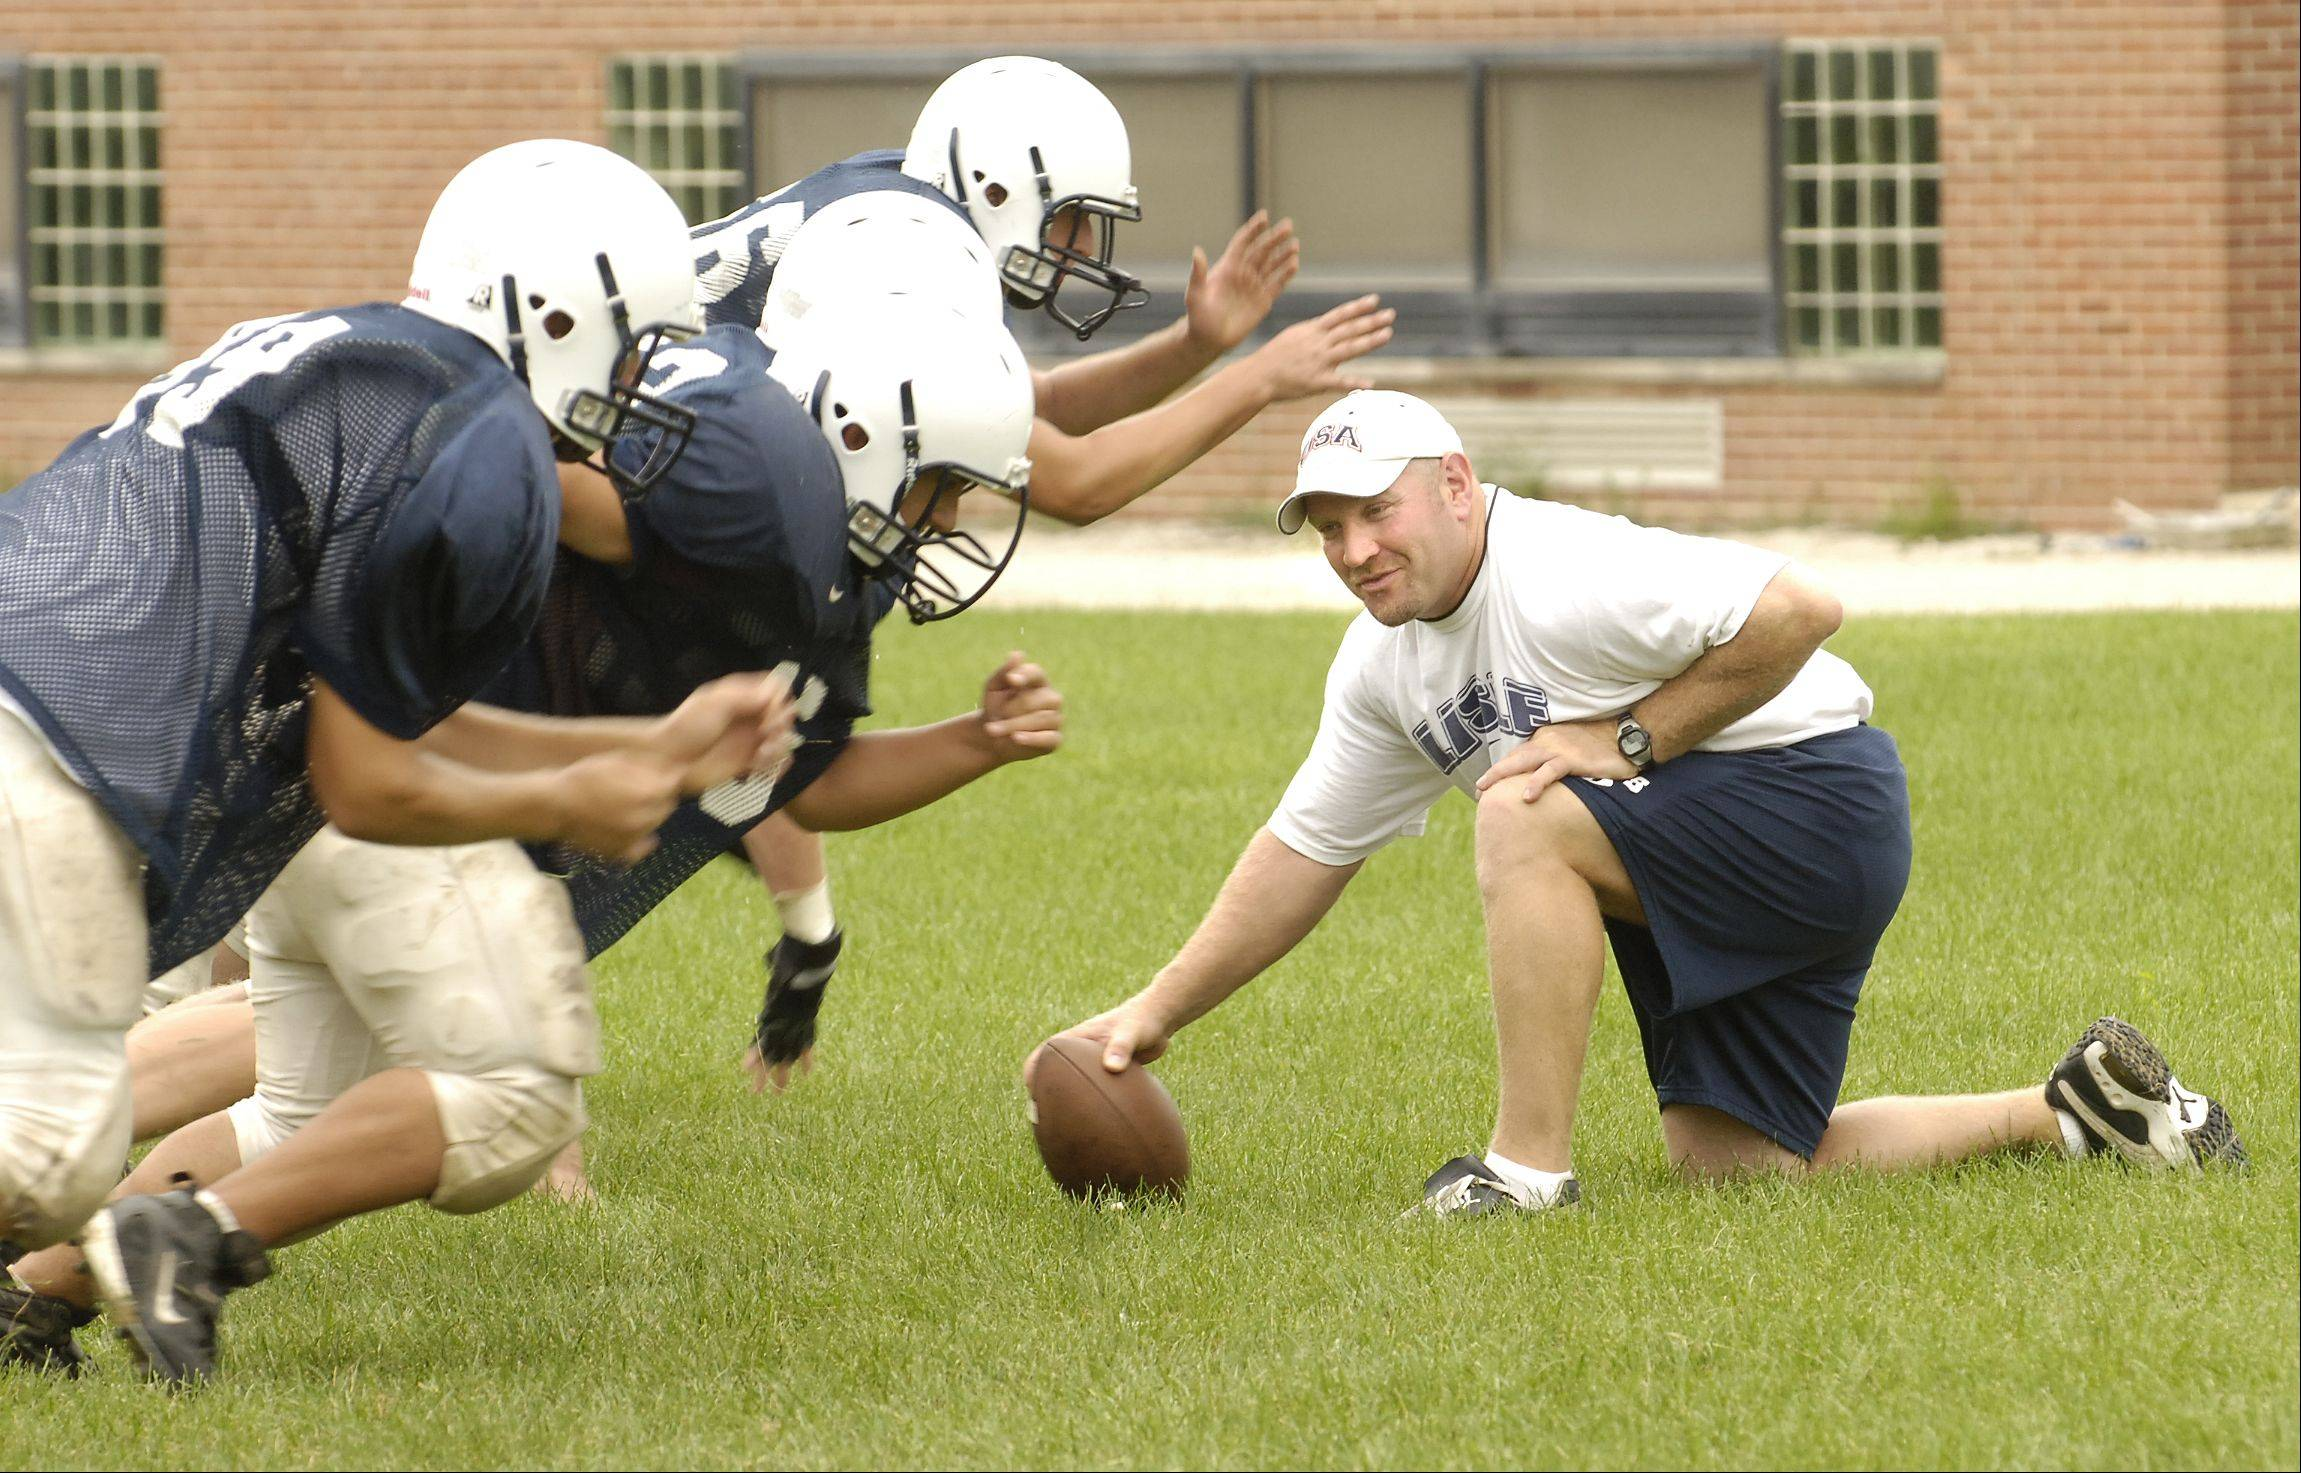 Dan Sanko, the head coach of the Lisle varsity football team, runs a drill during practice Wednesday.